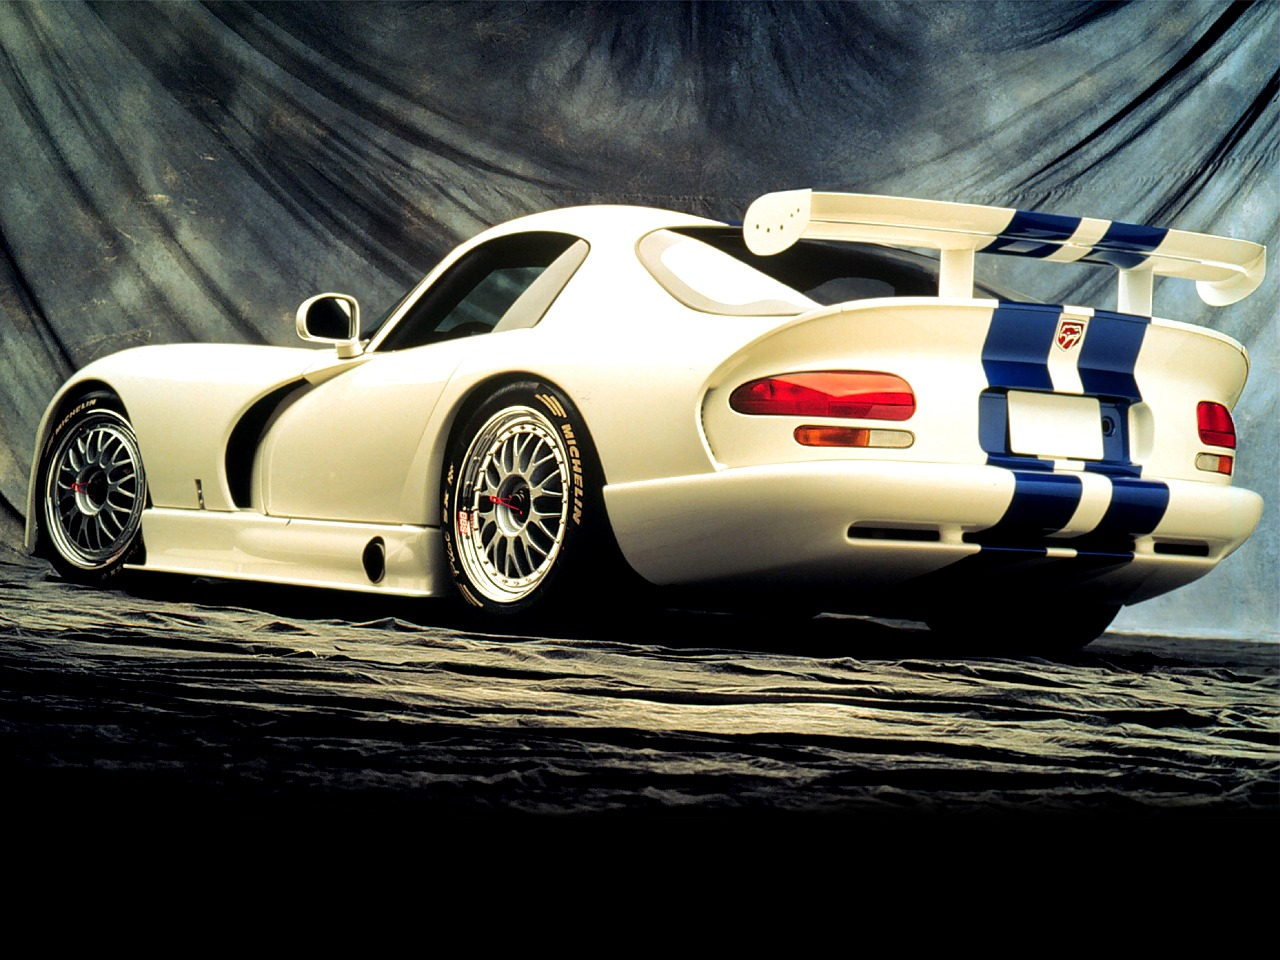 Dodge Viper GTS-R Race Car Prototype (1995) – Old Concept Cars